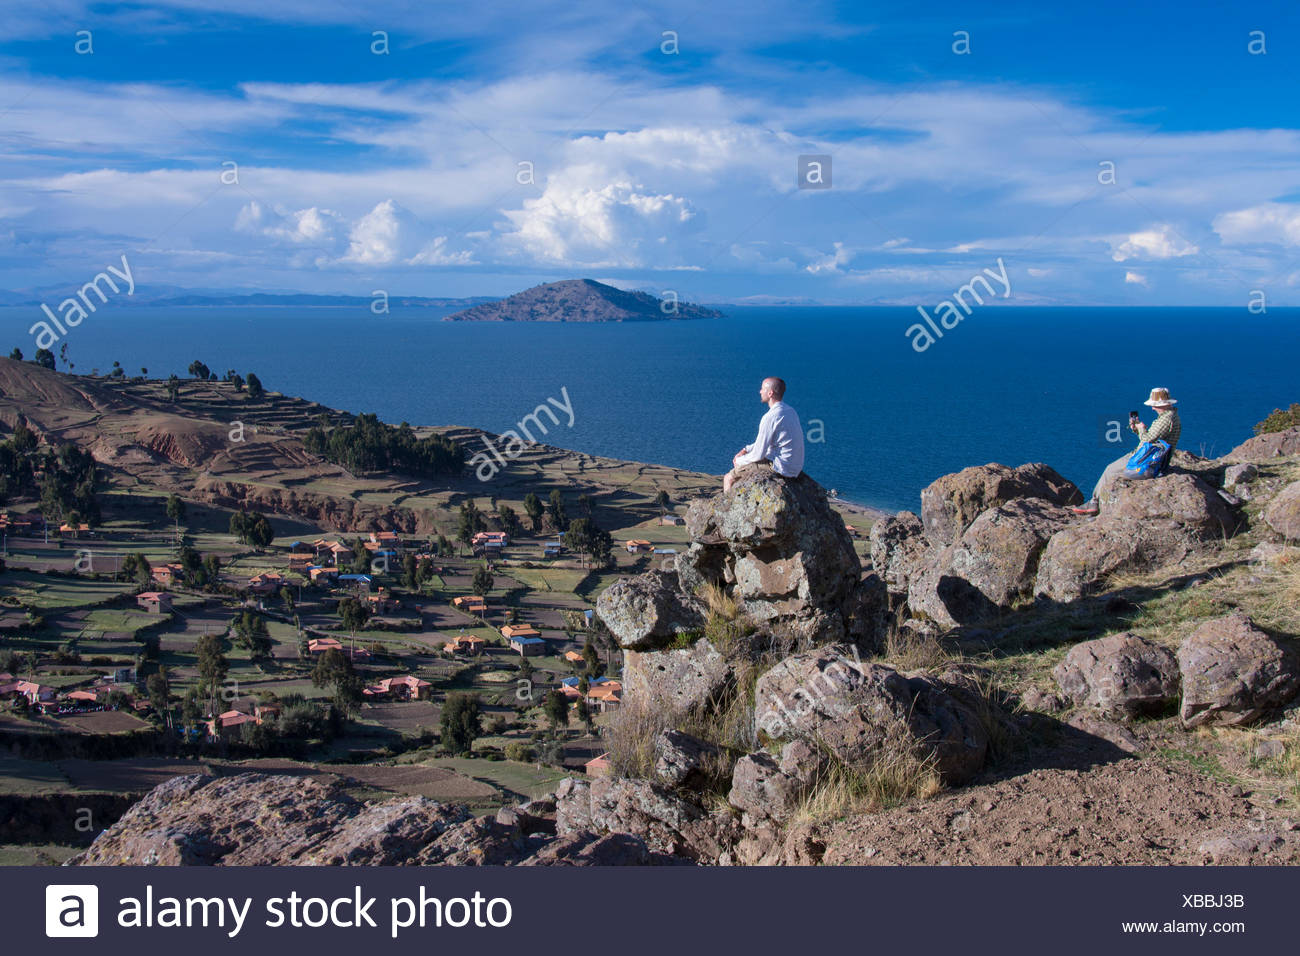 Viewpoint from the top of the island of Island of Amantani, Lake Titicaca, Peru - Stock Image